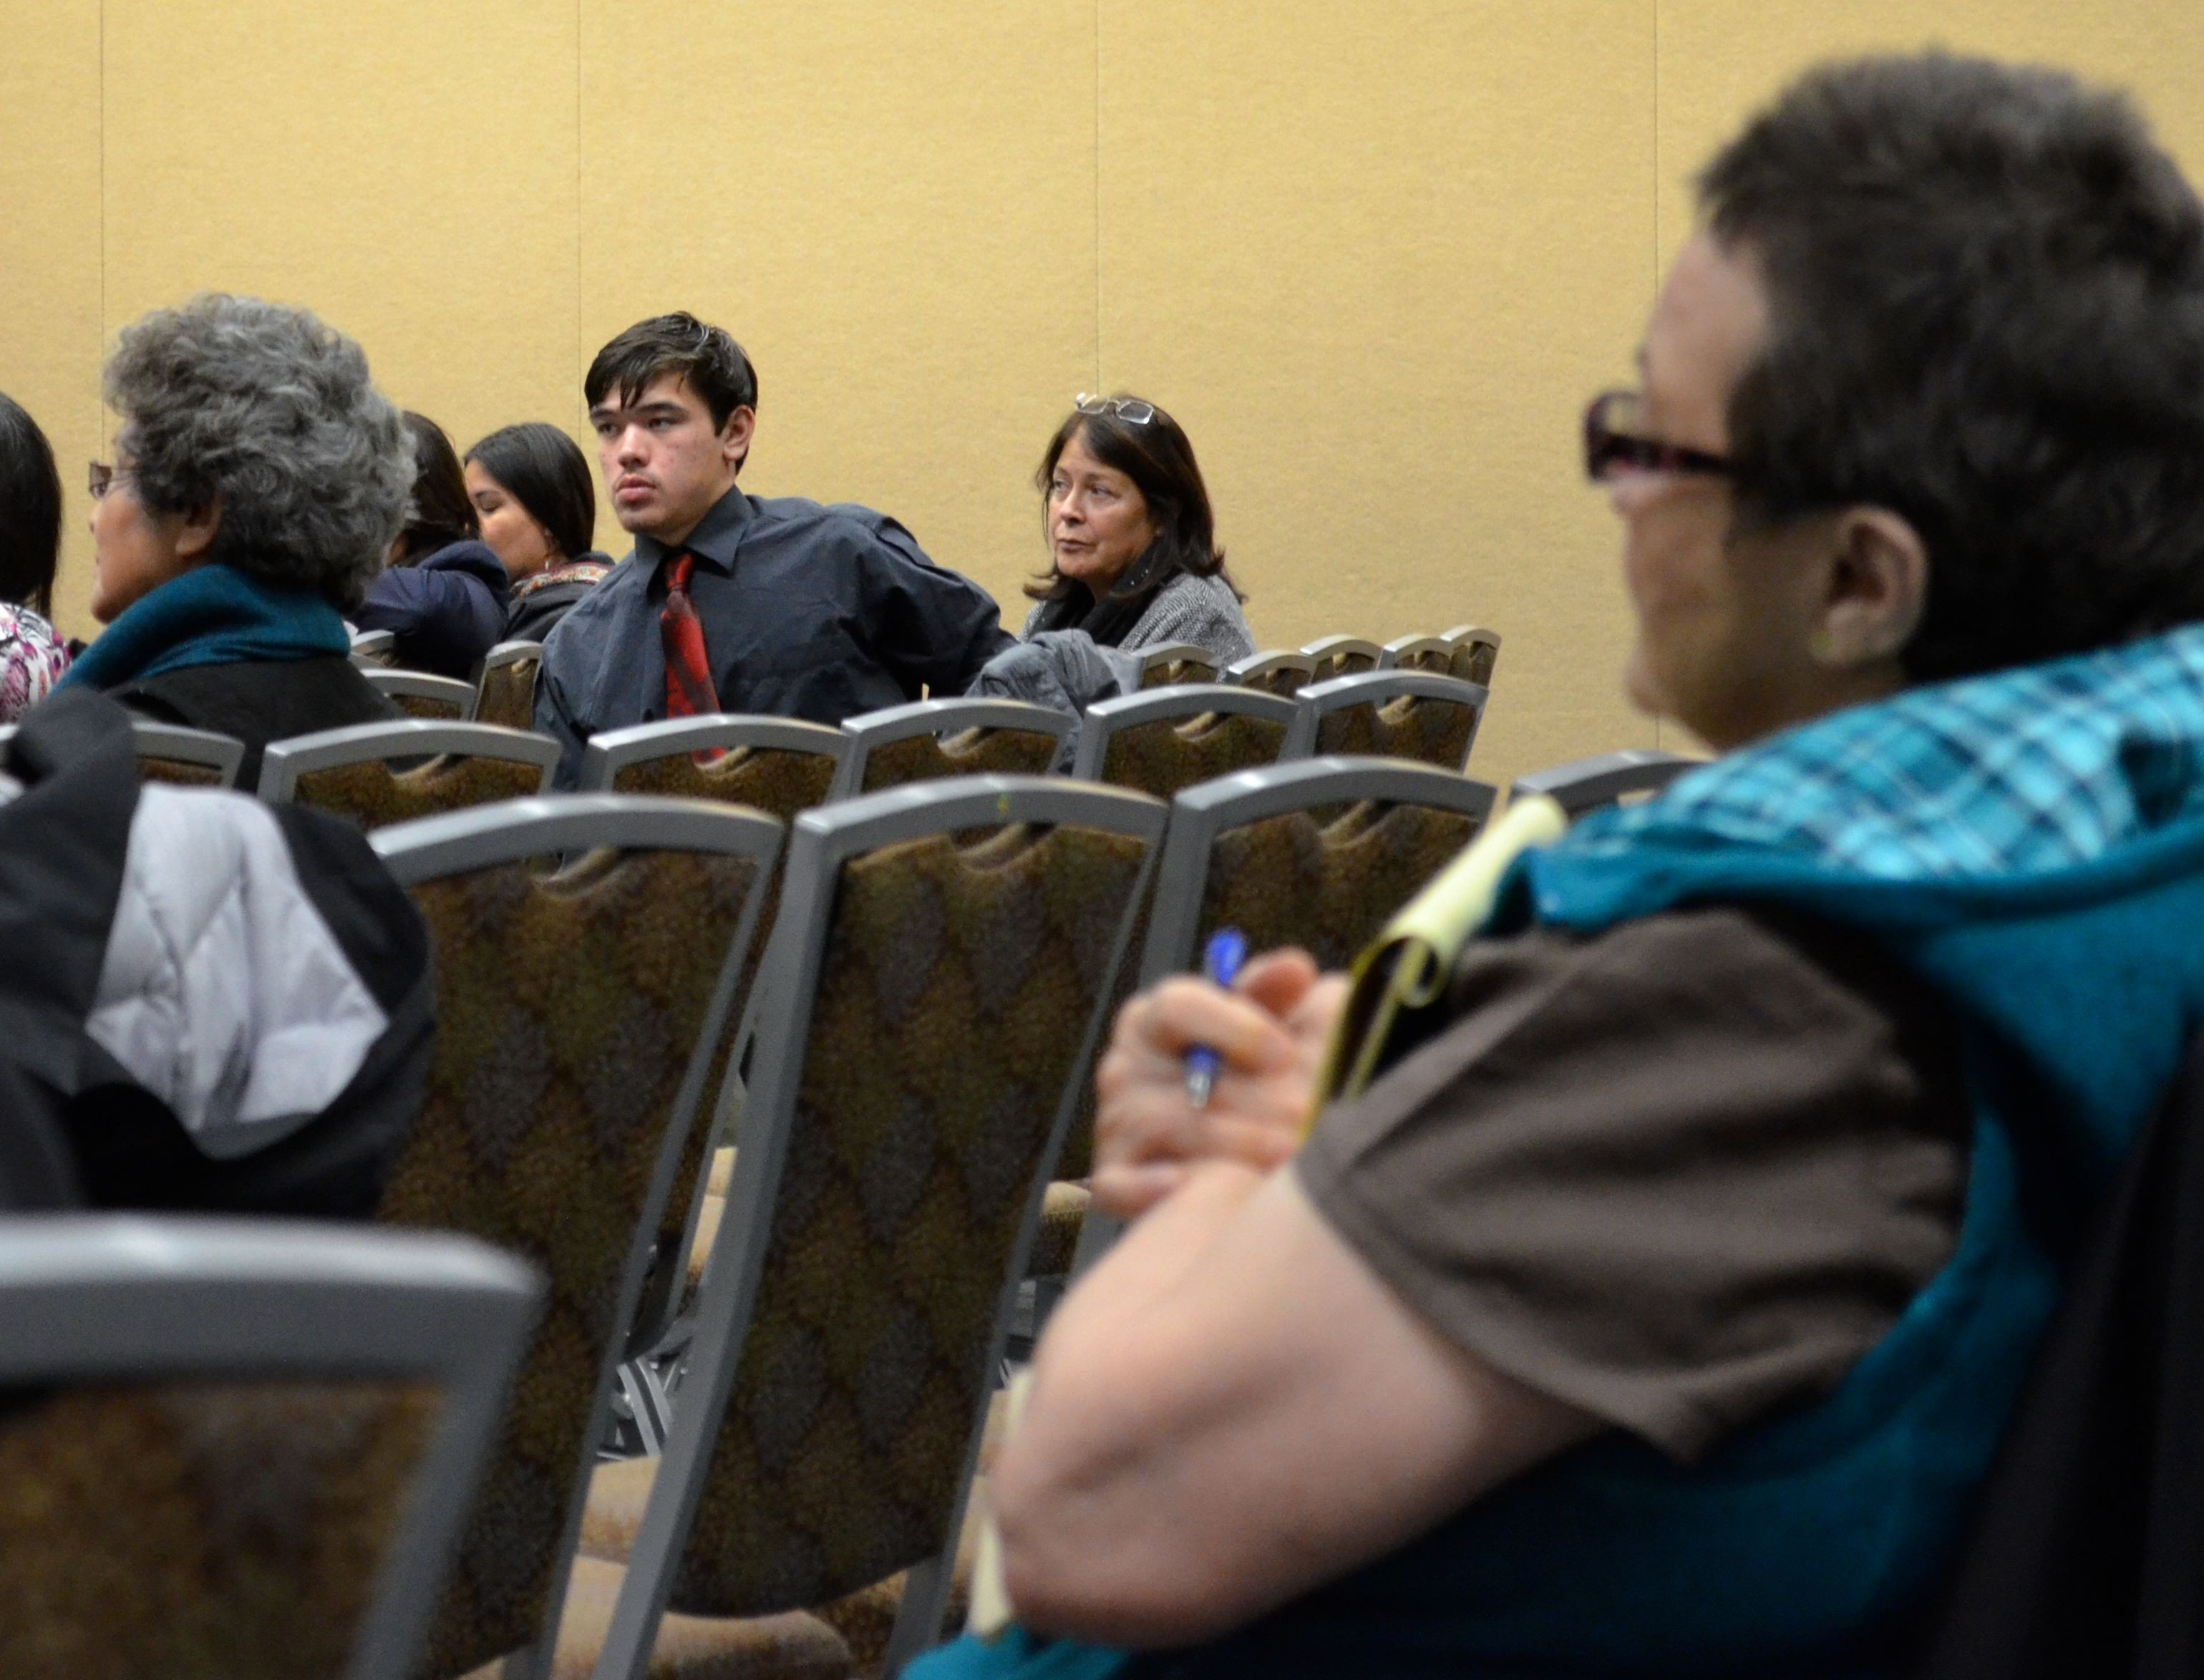 Alaska Federation of Natives President Julie Kitka listens during a panel discussion on taking tribal land into trust. (Photo by Jennifer Canfield/KTOO)